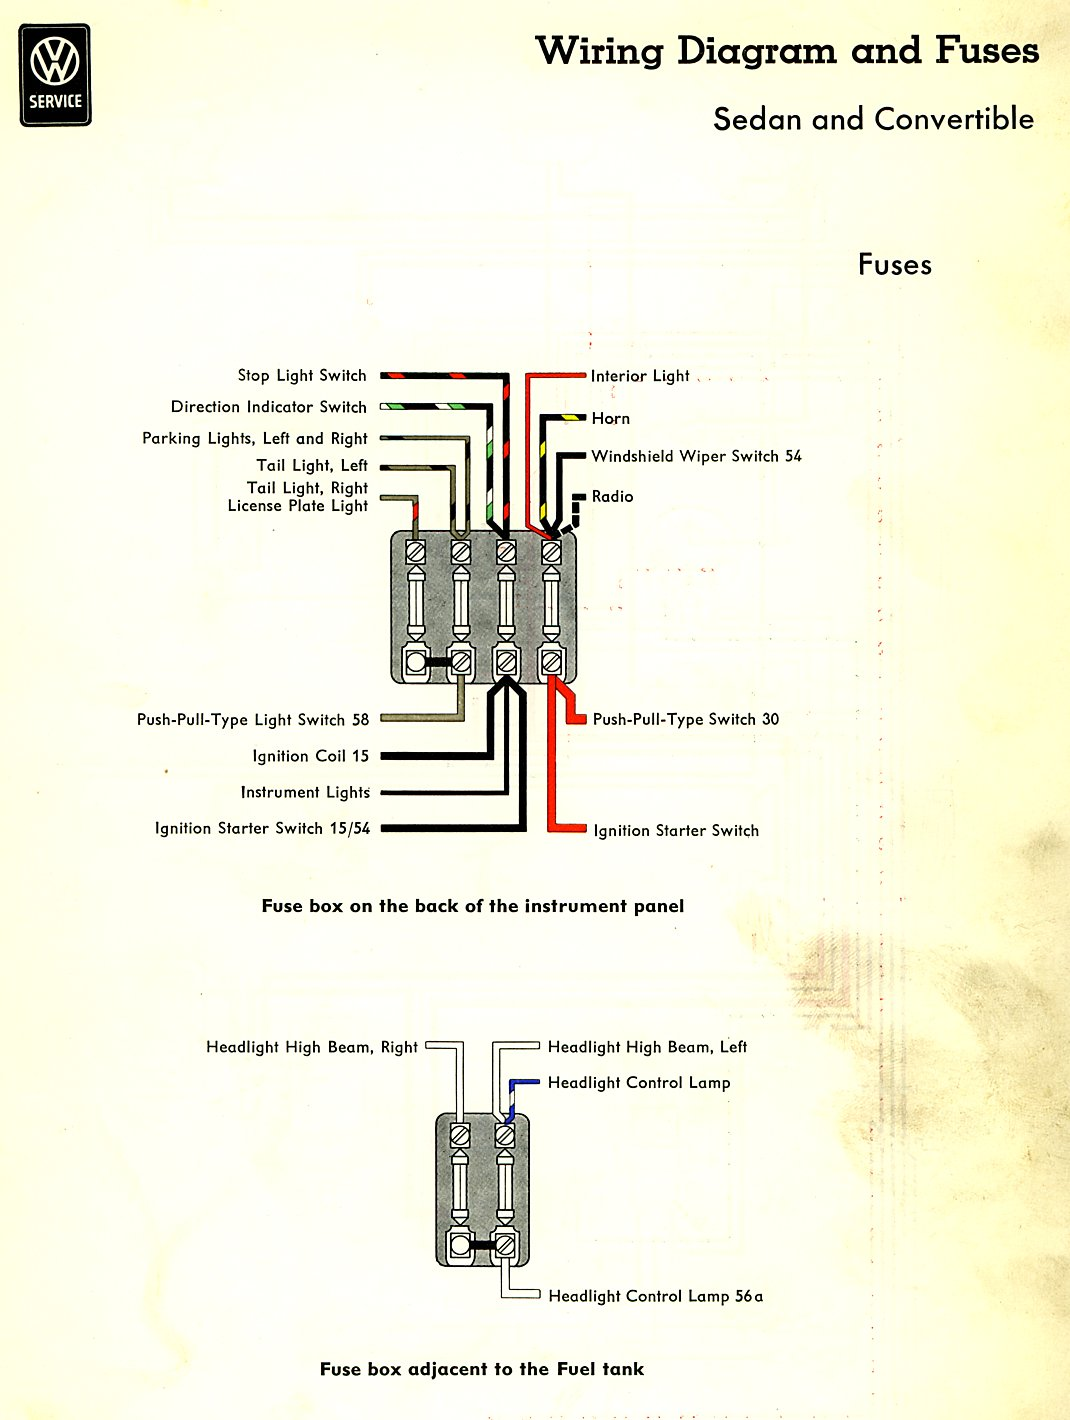 thesamba com type 1 wiring diagramsFuse Box Wiring Diagram For 1974 Super Beetle #17